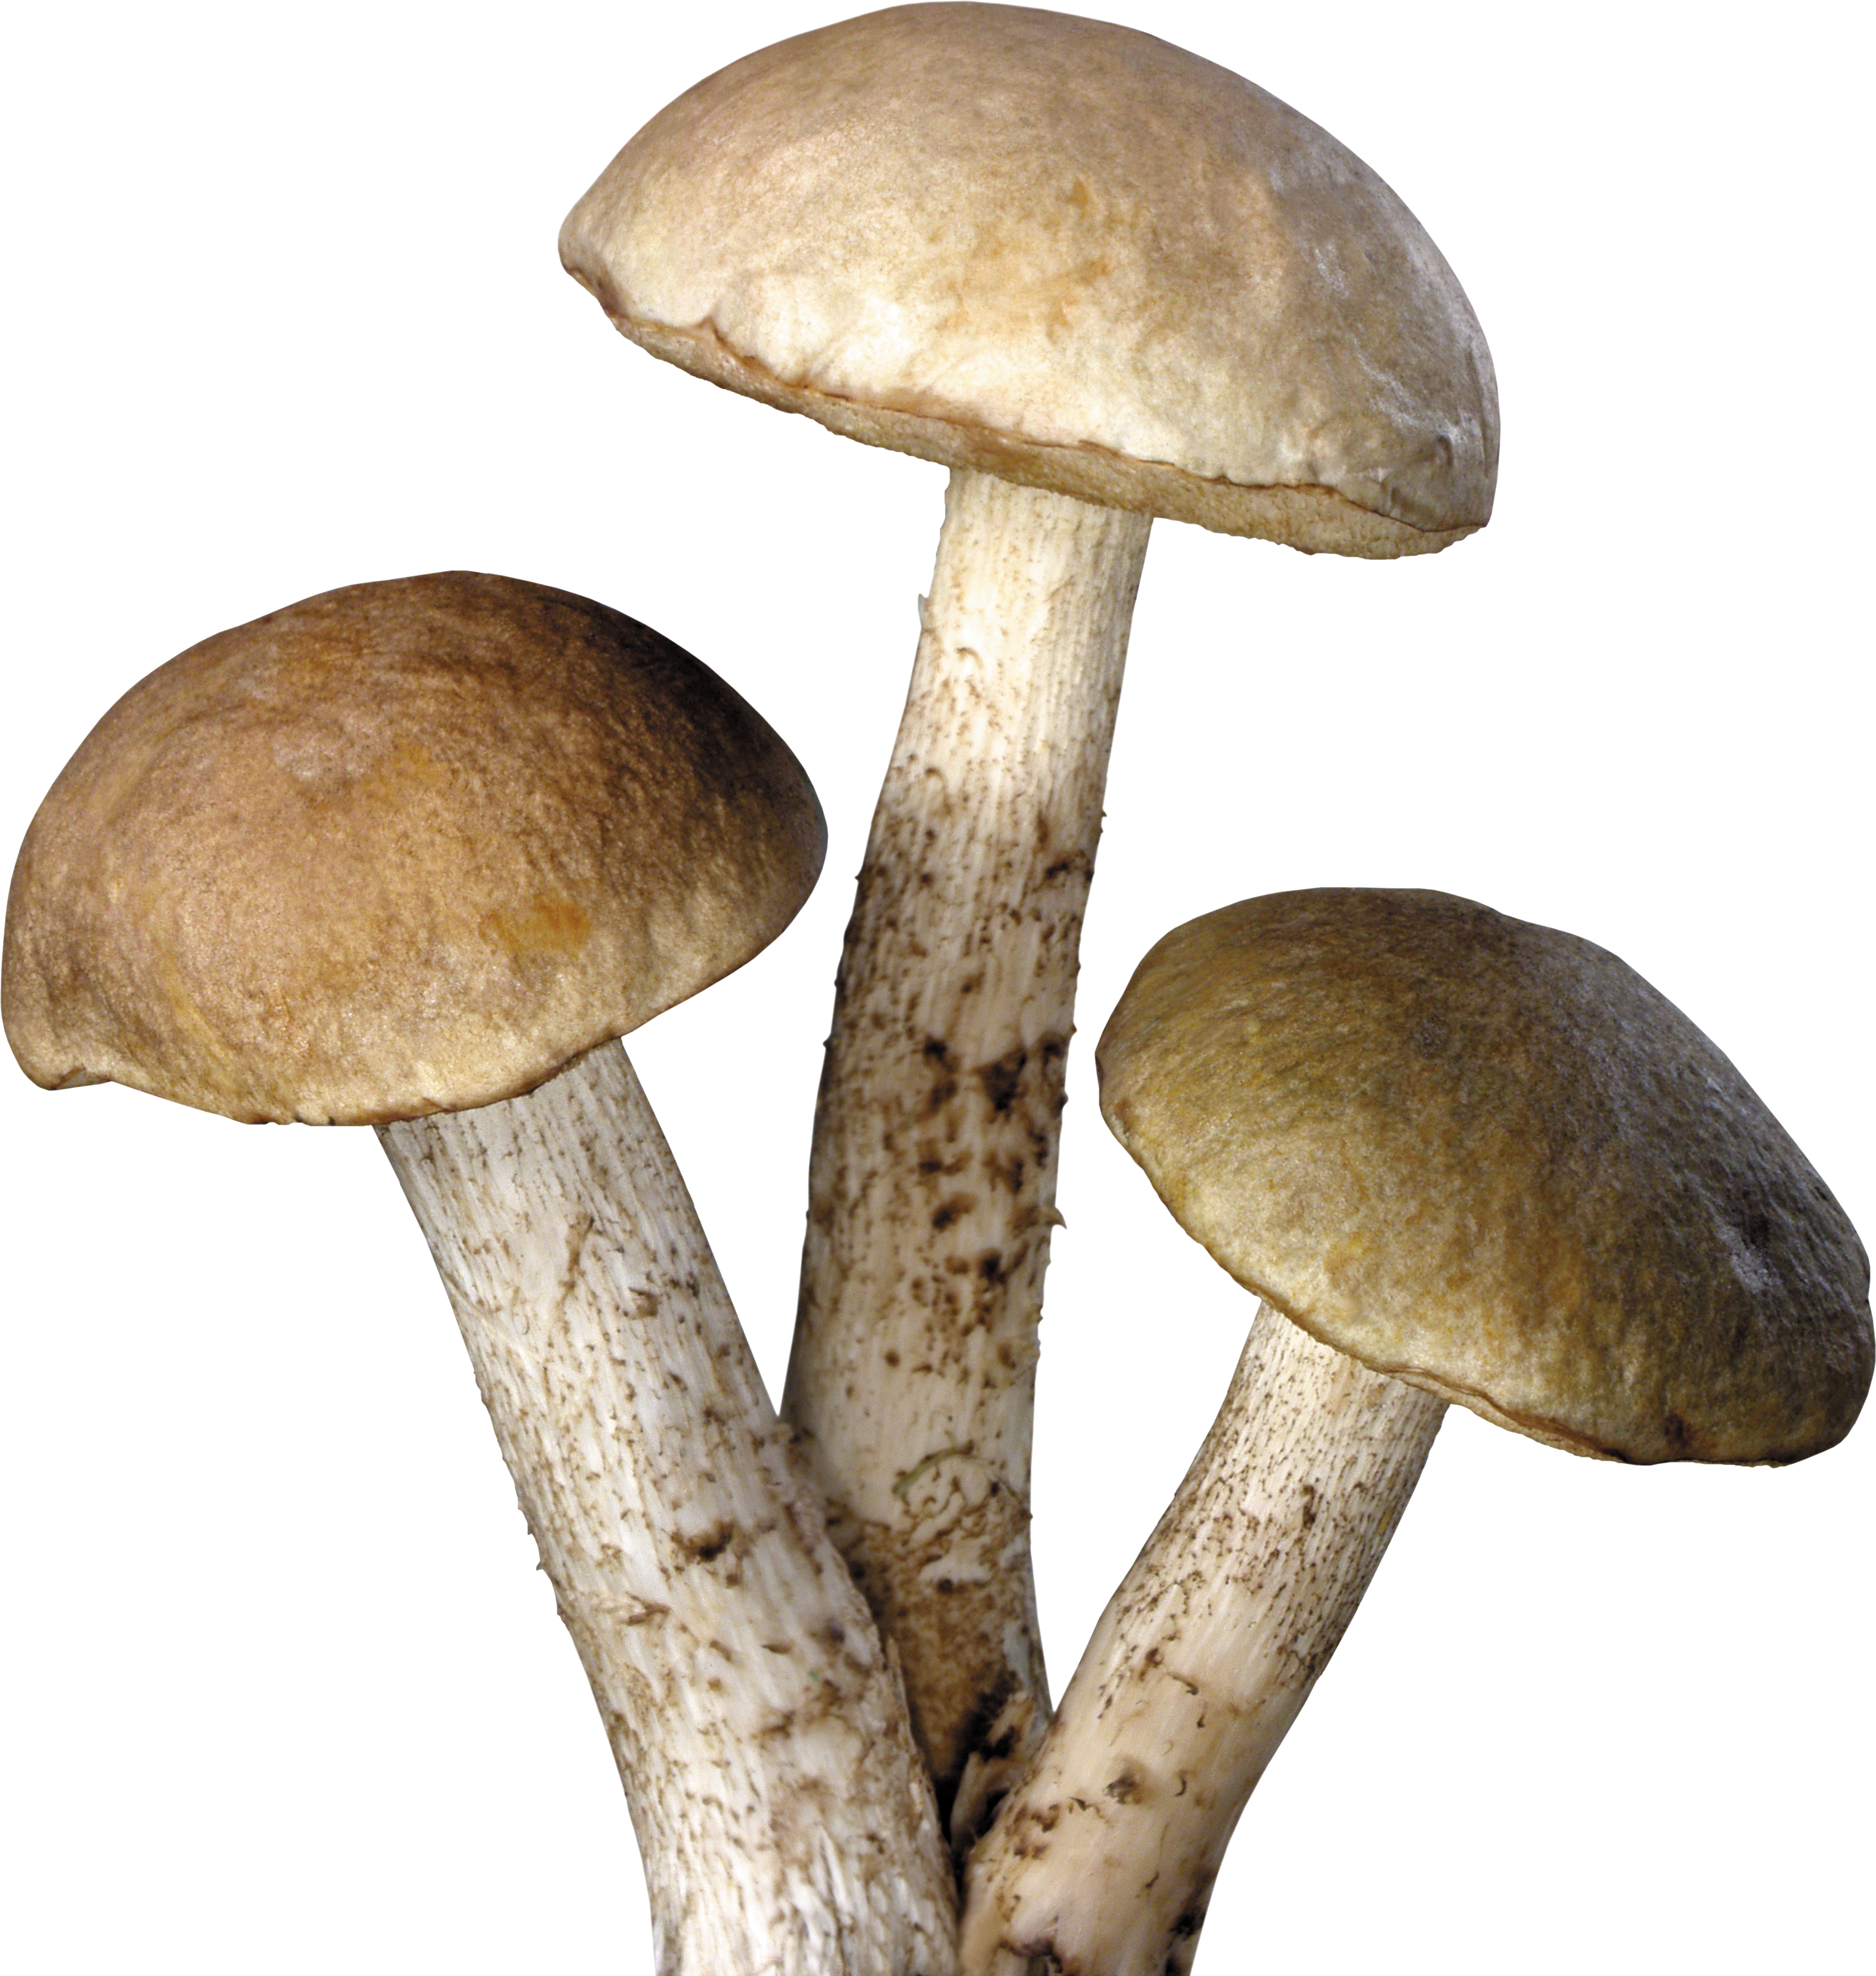 Mushroom png. Transparent pictures free icons